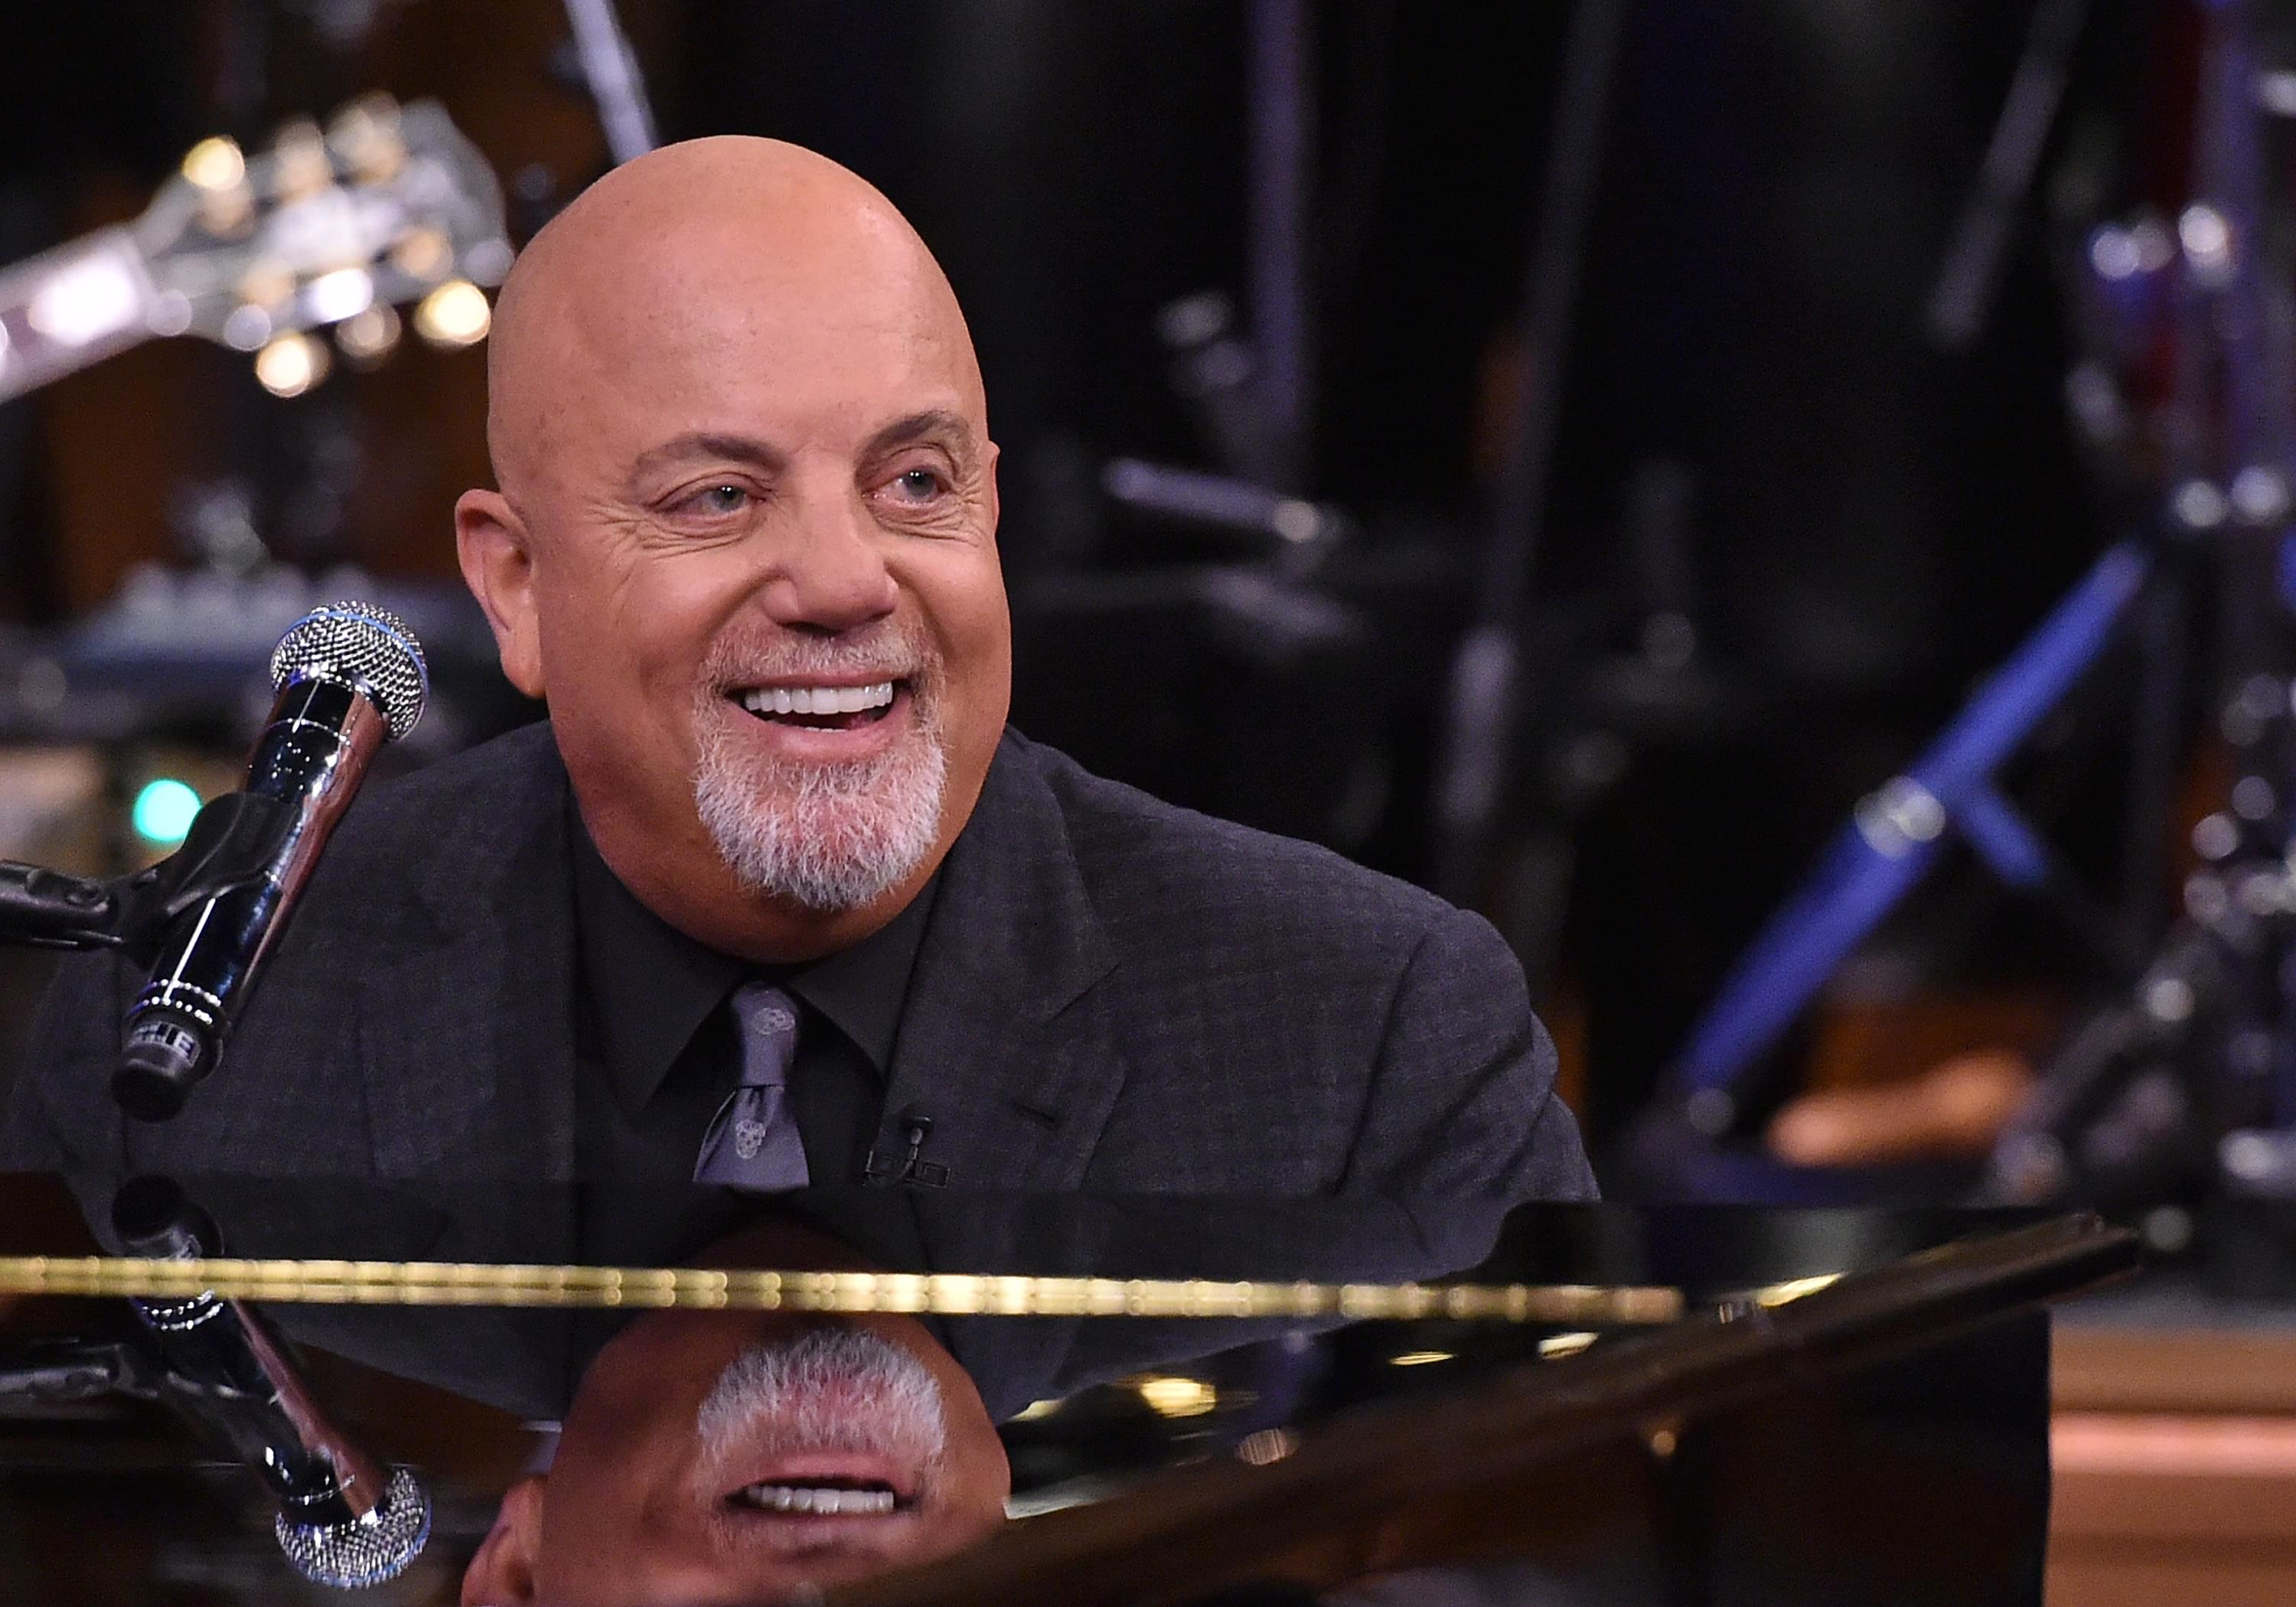 WATCH Billy Joel jamming on a junked piano right on the street